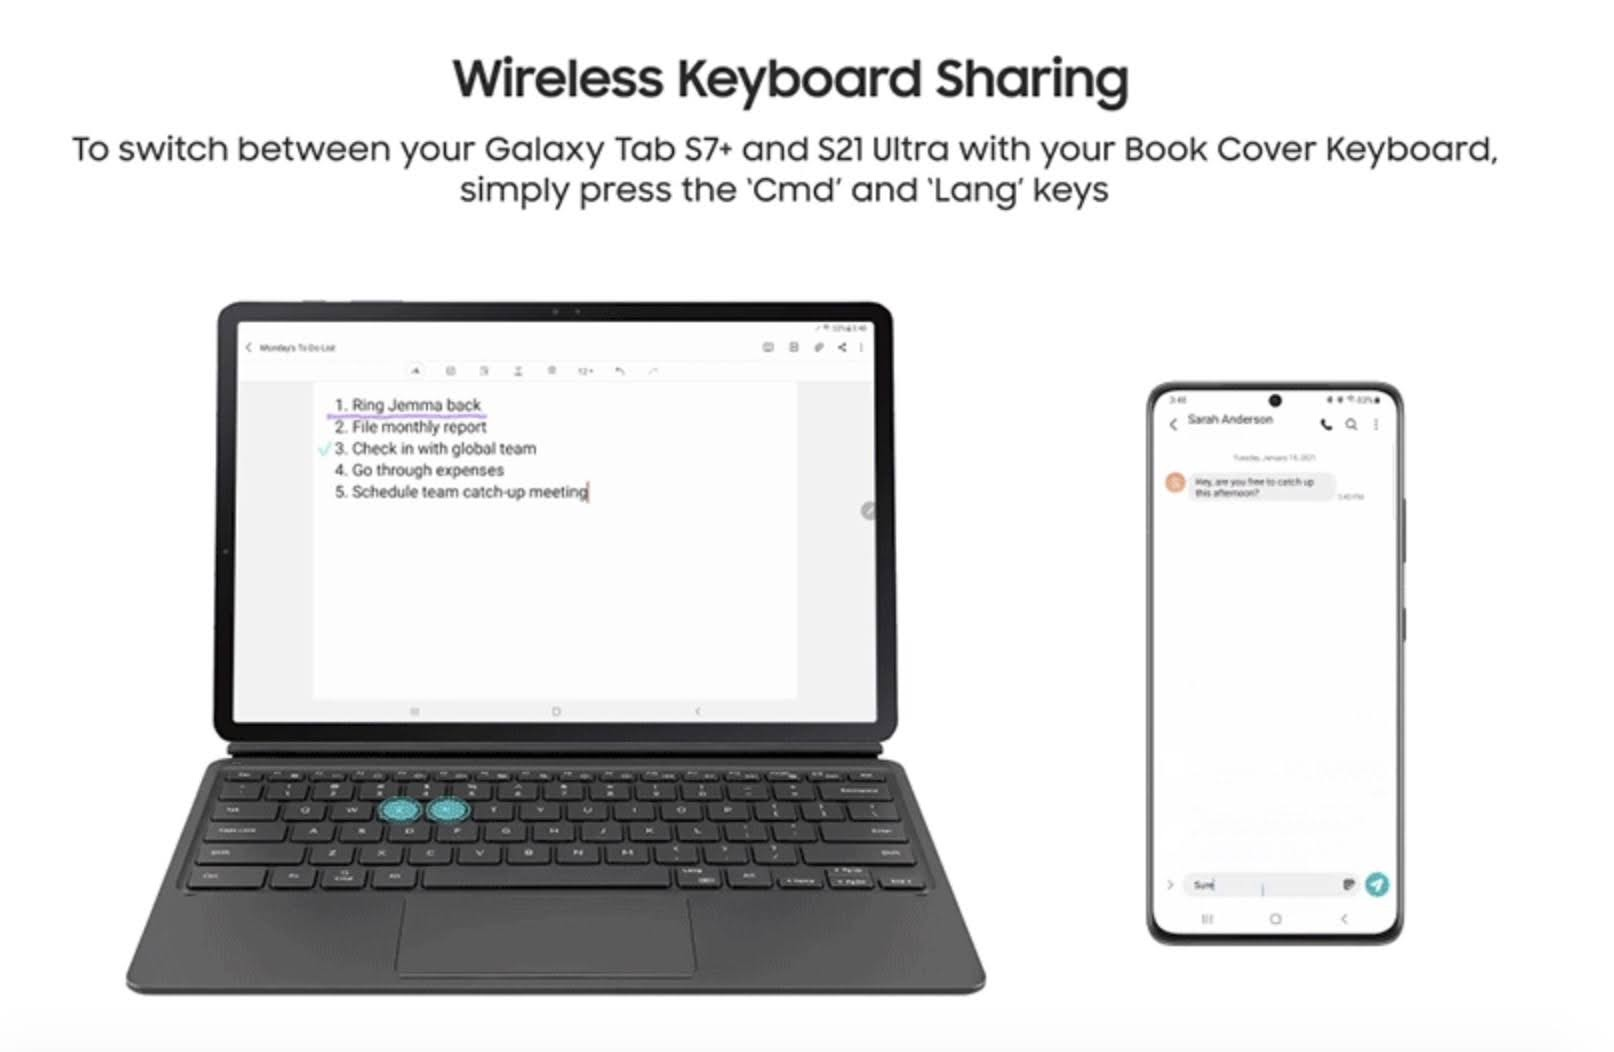 Samsung One UI 3.1 with Wireless Keyboard Sharing function.